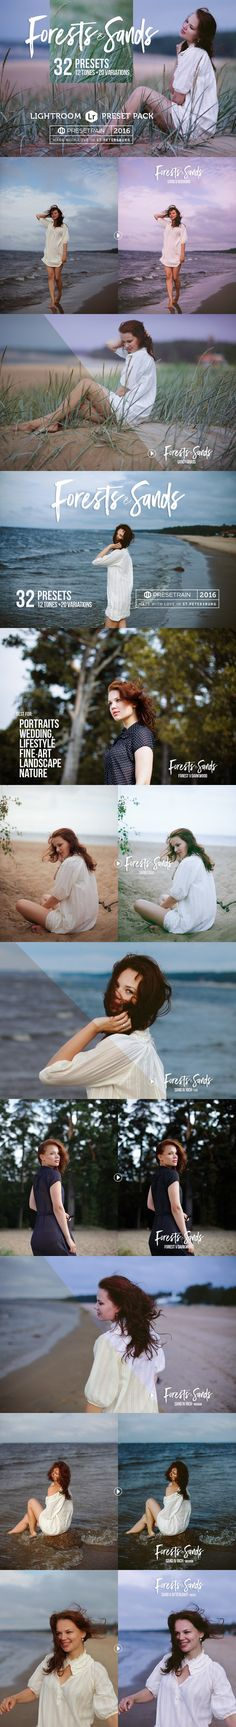 Forests & Sands Lightroom Presets. Actions. $12.00